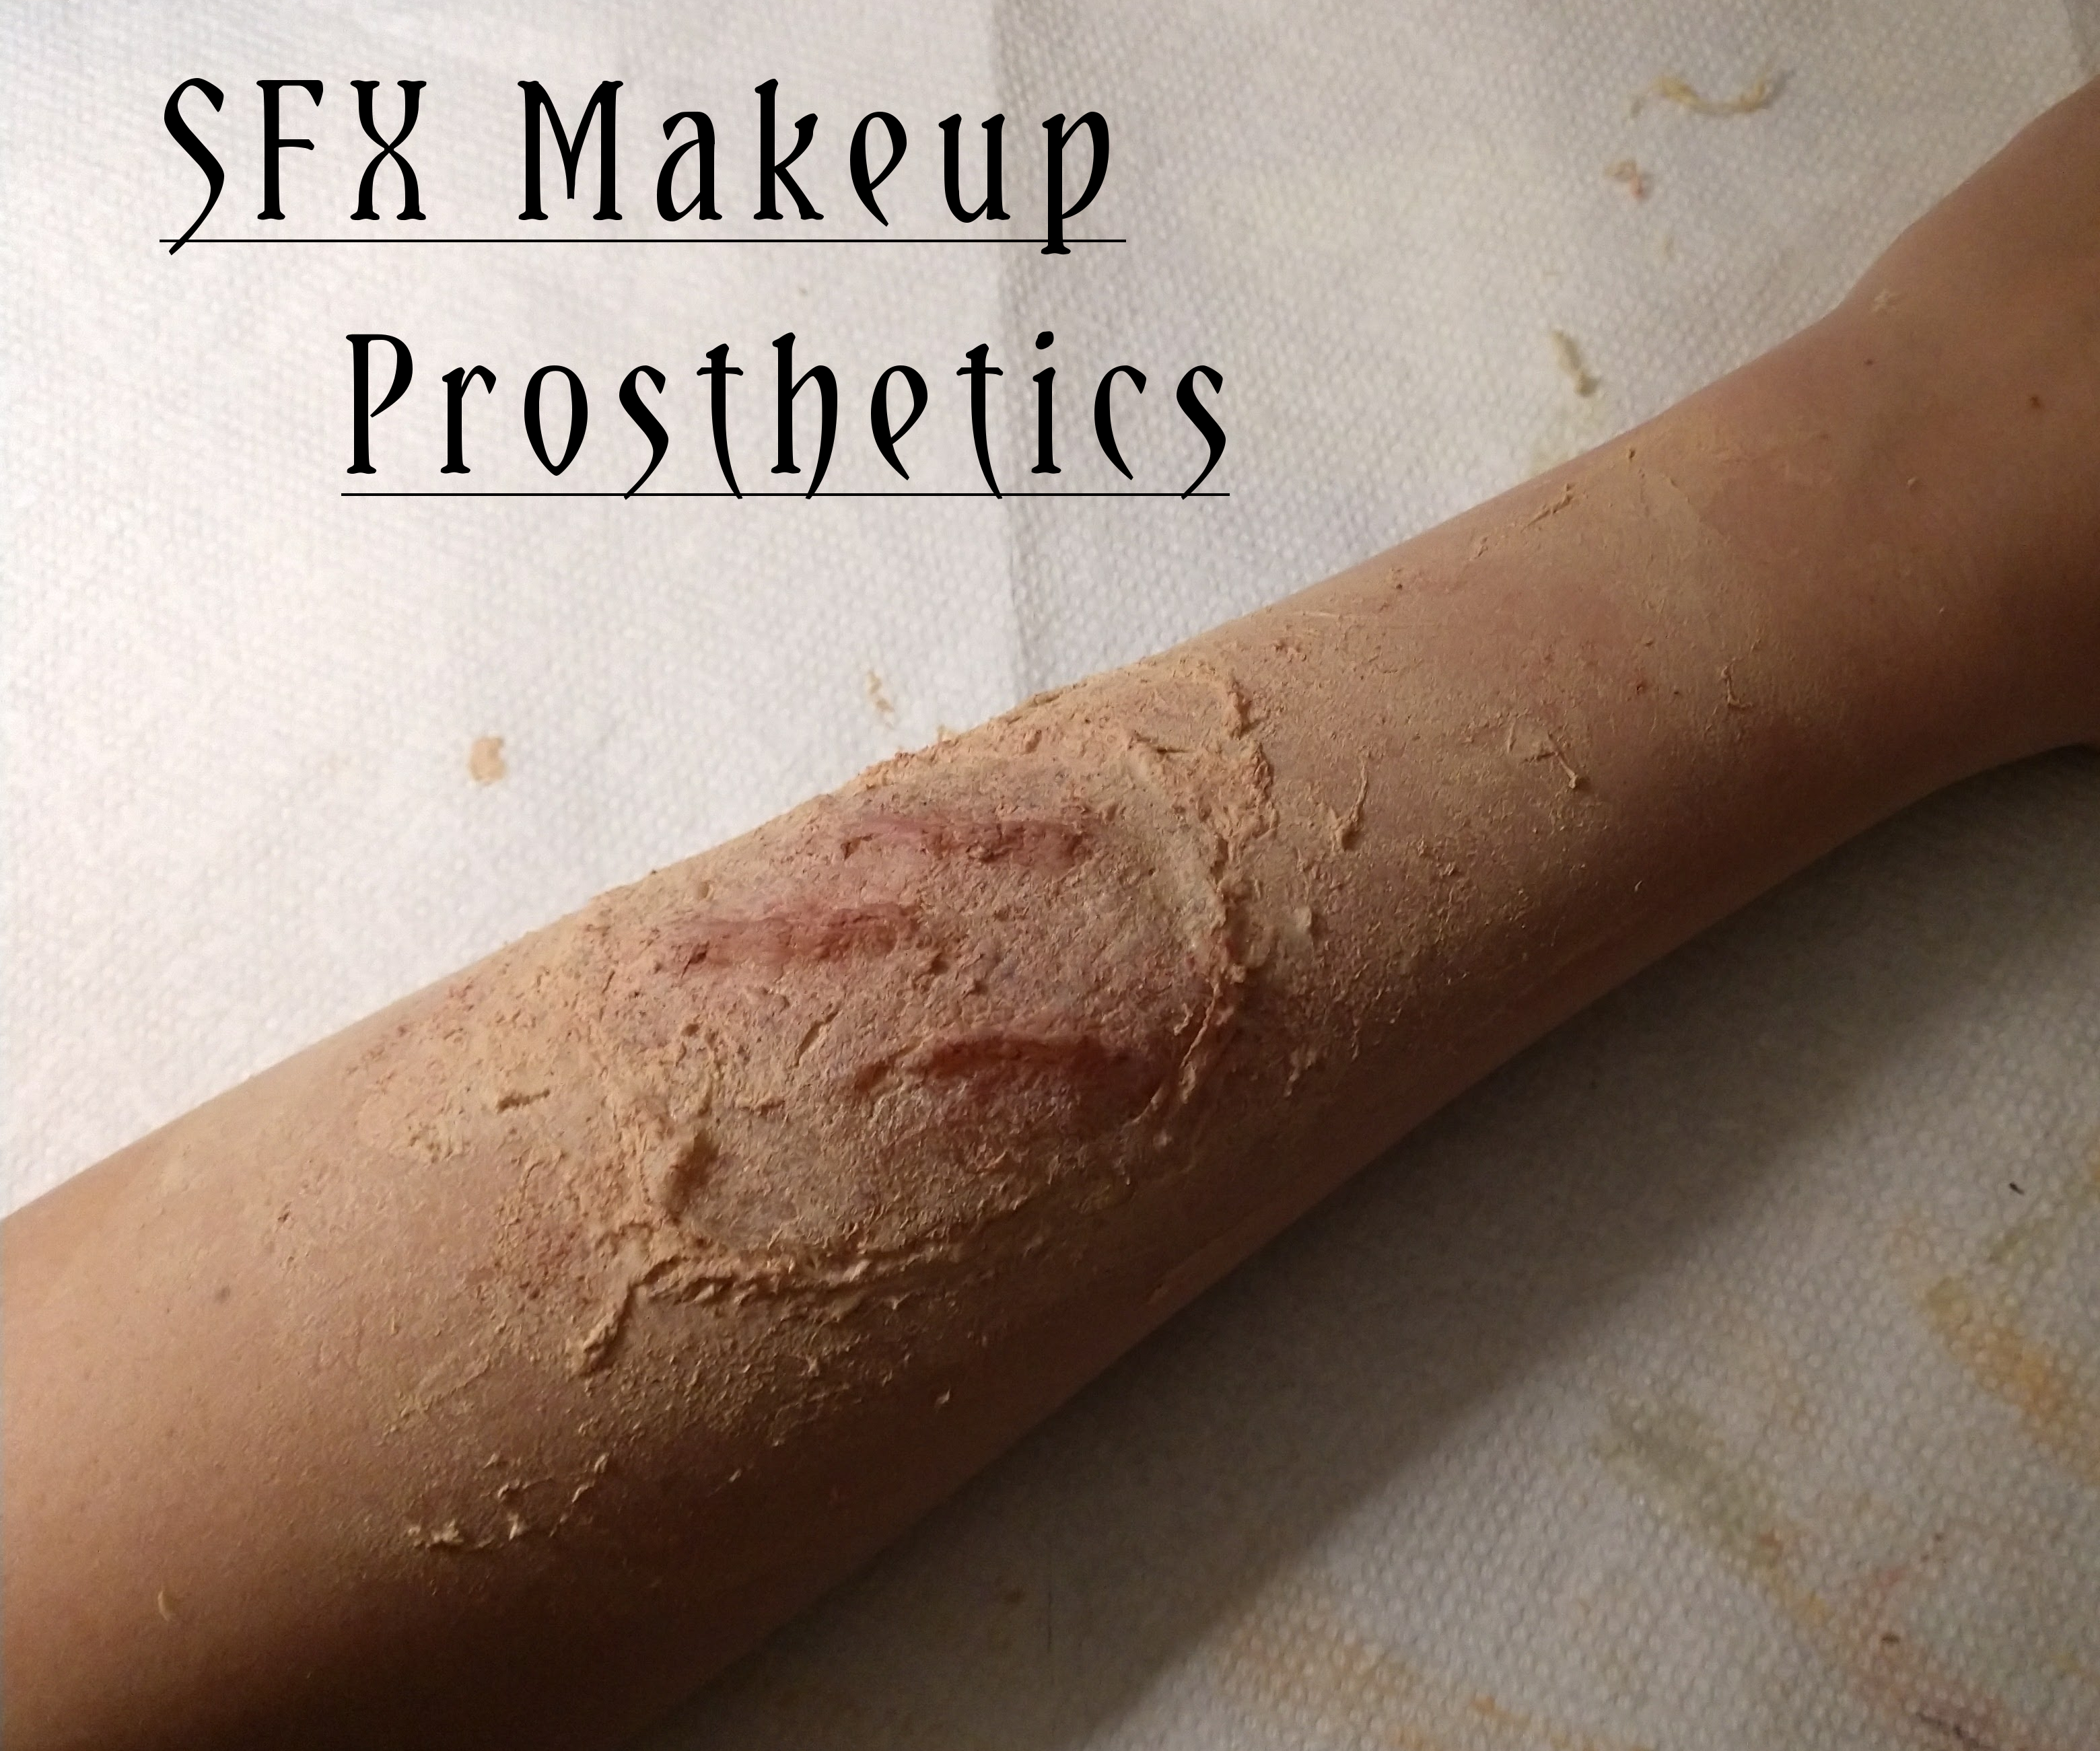 How to Make SFX Makeup Prosthetics 4 Steps (with Pictures)